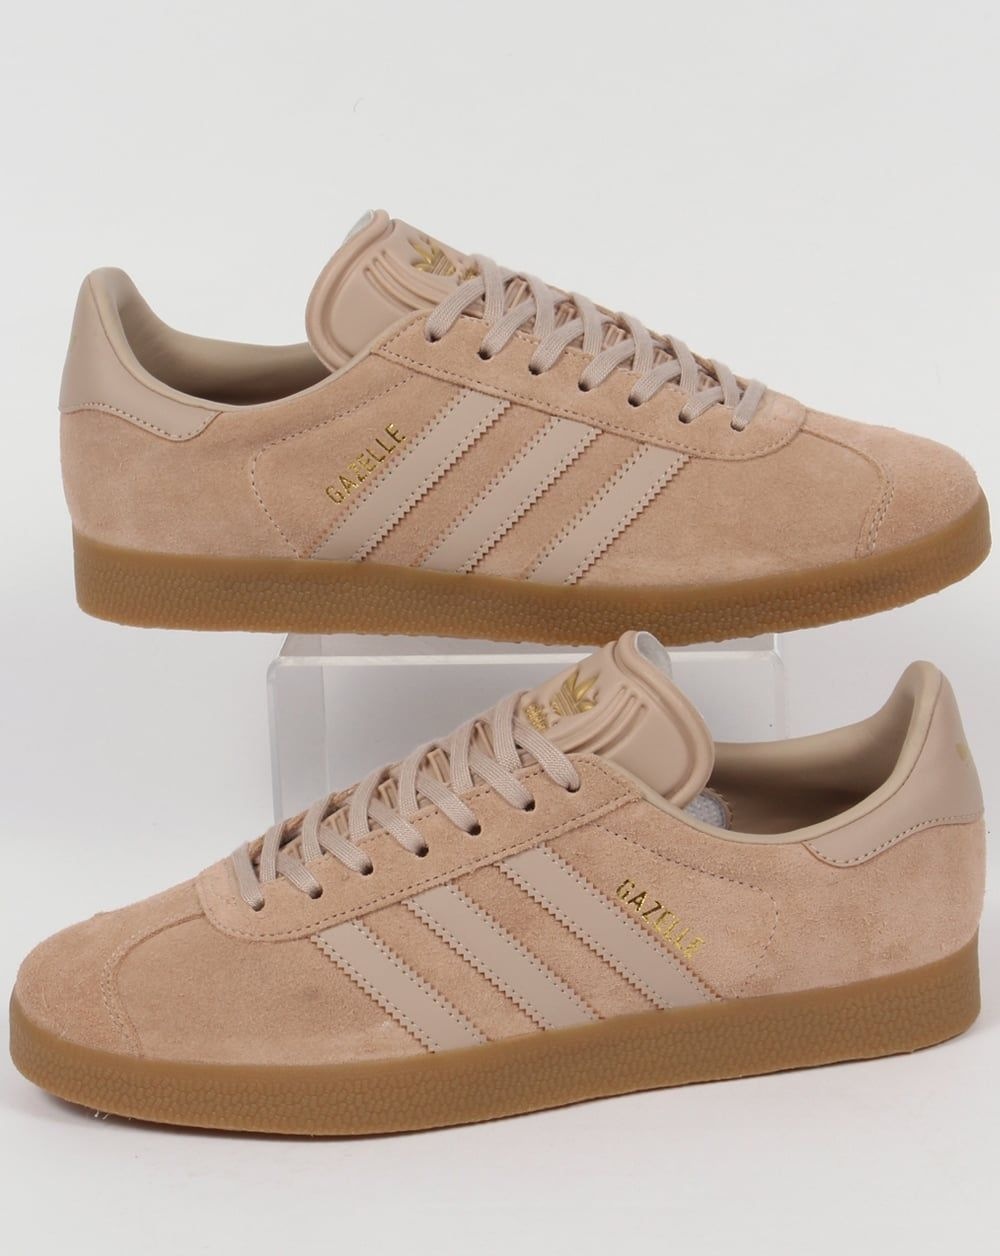 quality design 1503c a1039 Image result for adidas originals gazelle IN BROWN